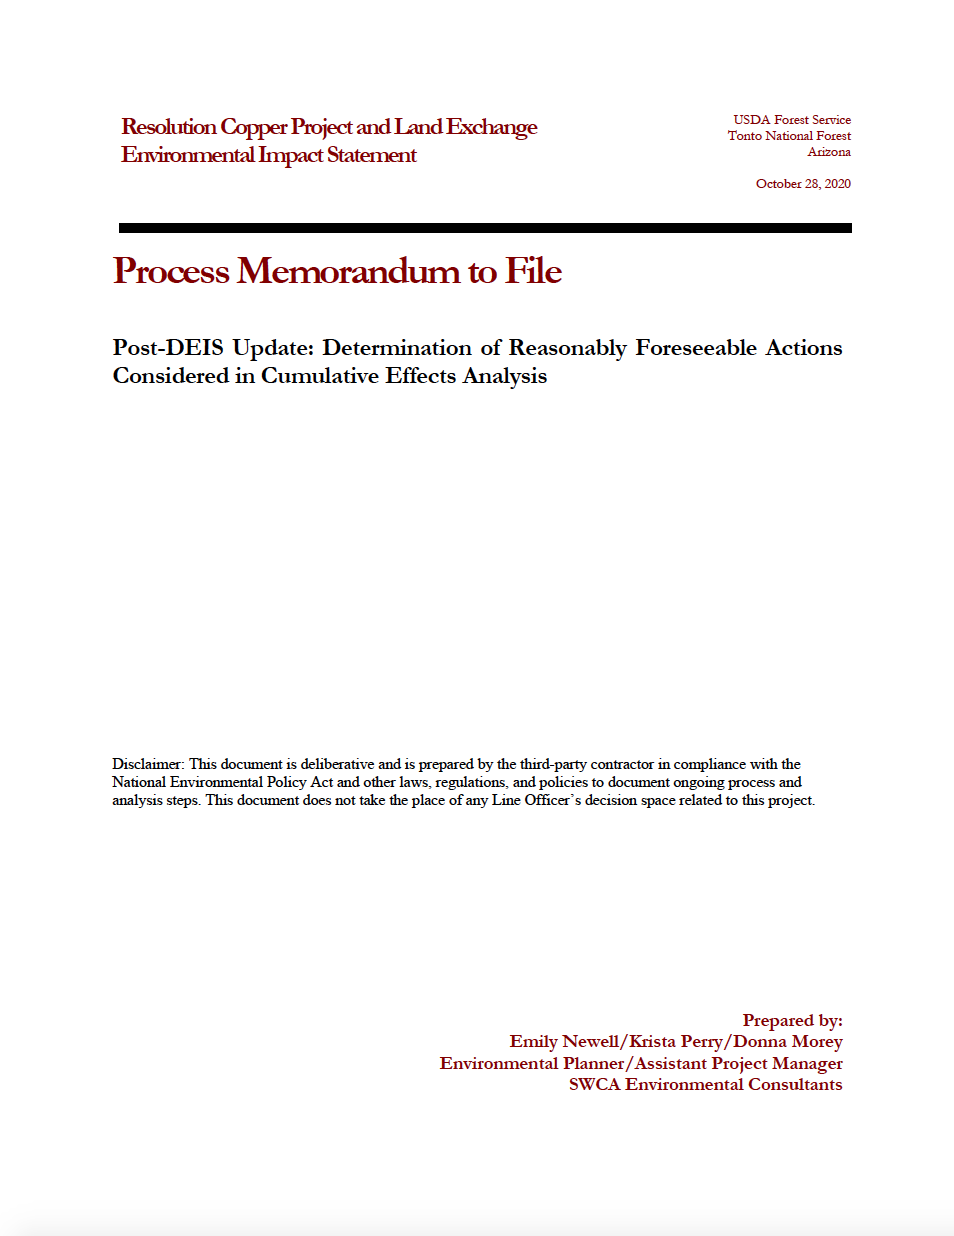 Thumbnail image of document cover: Post-DEIS Update: Determination of Reasonably Foreseeable Actions Considered in Cumulative Effects Analysis